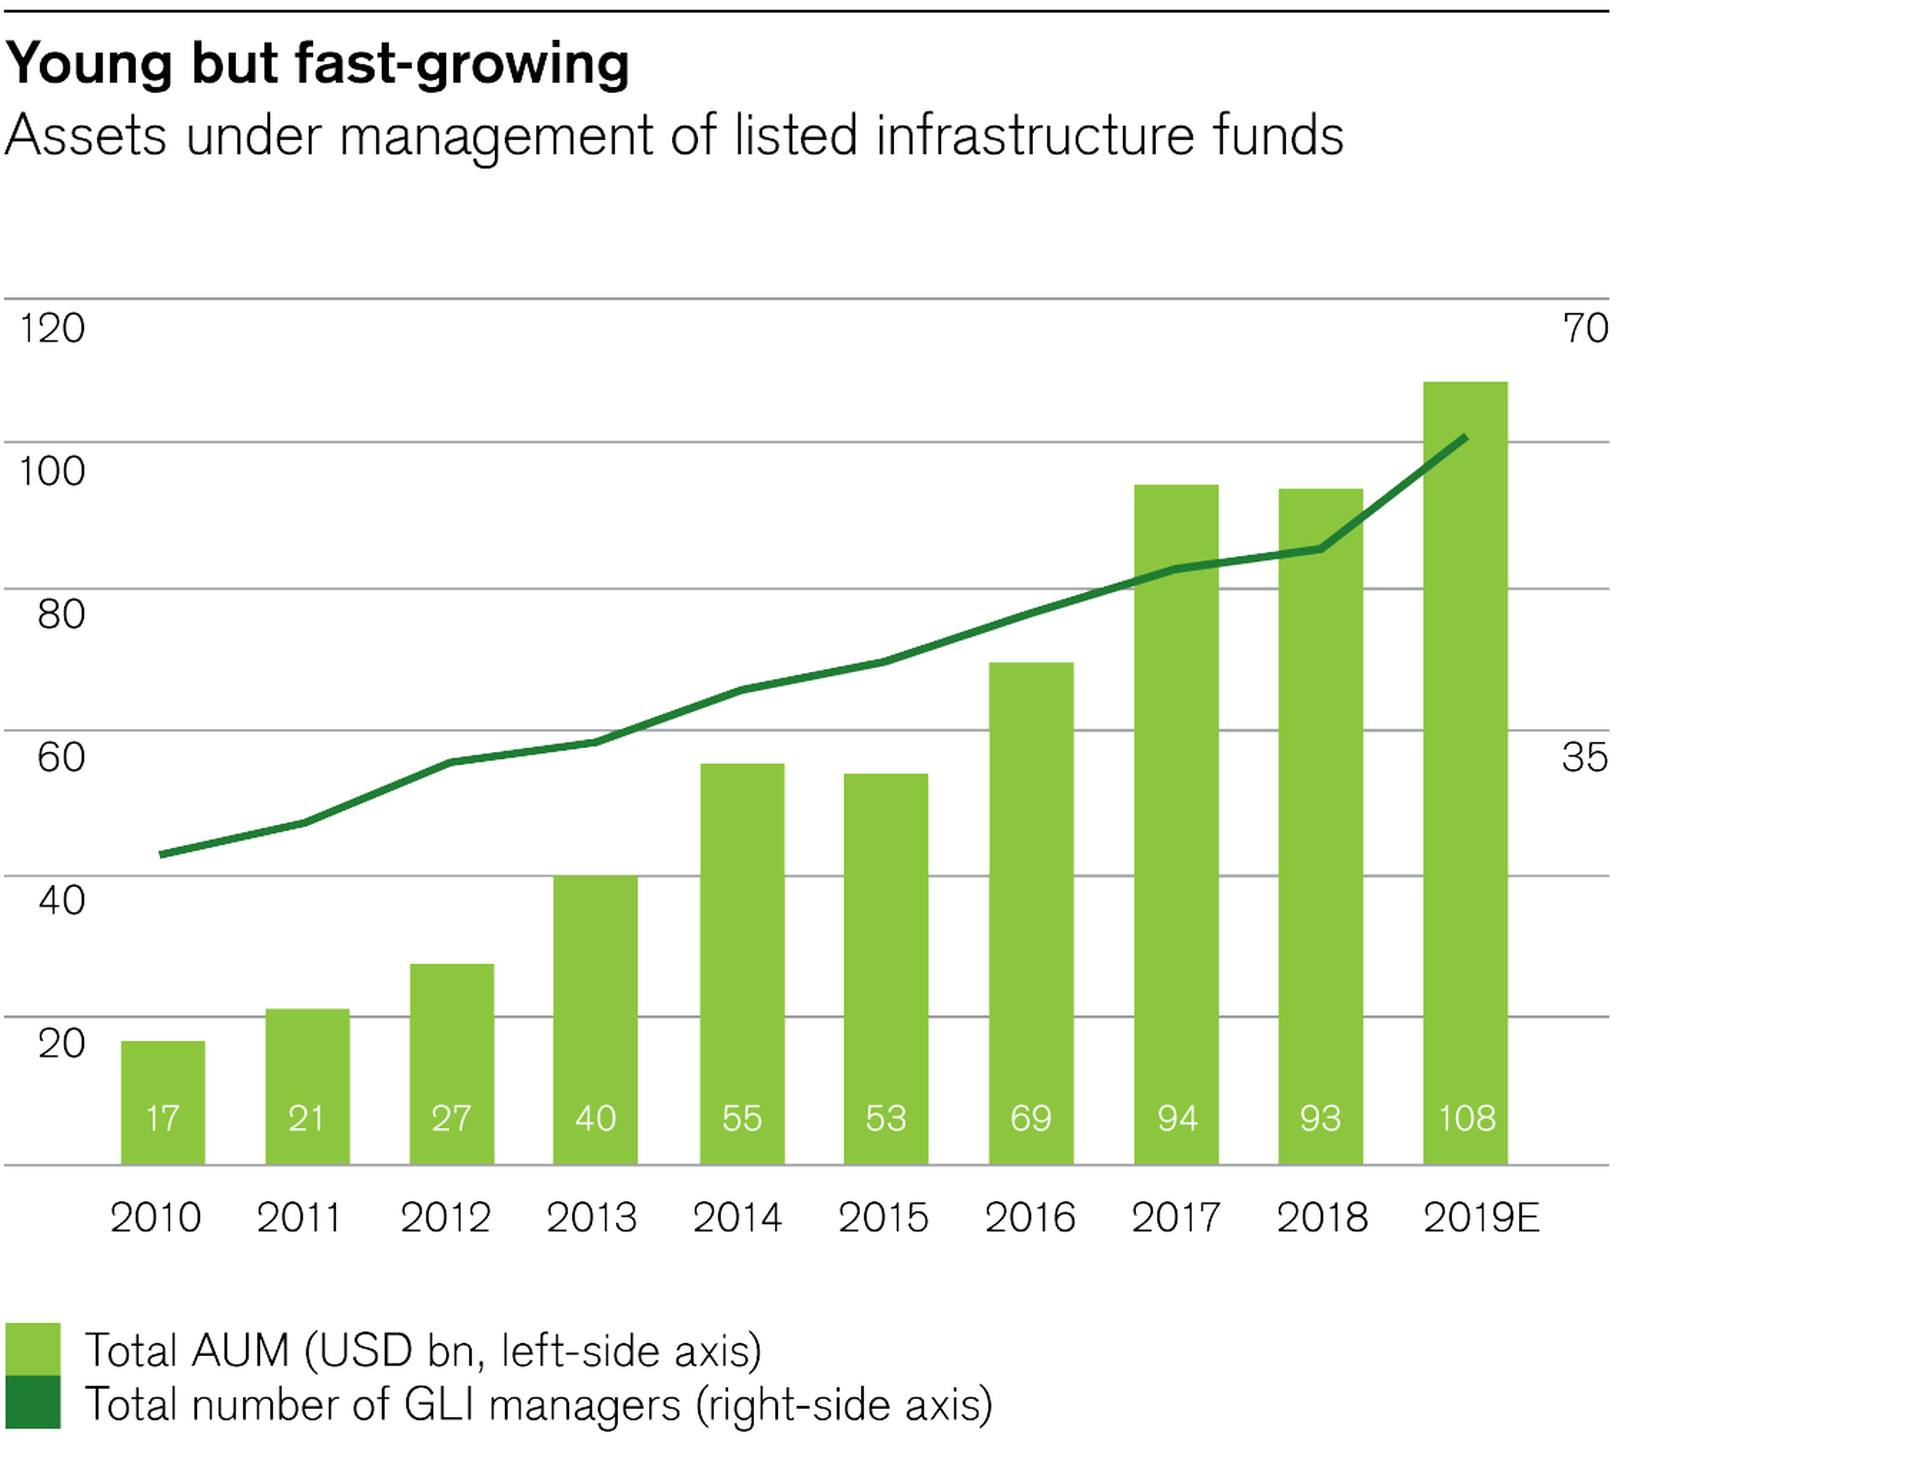 Assets under management of listed infrastructure funds